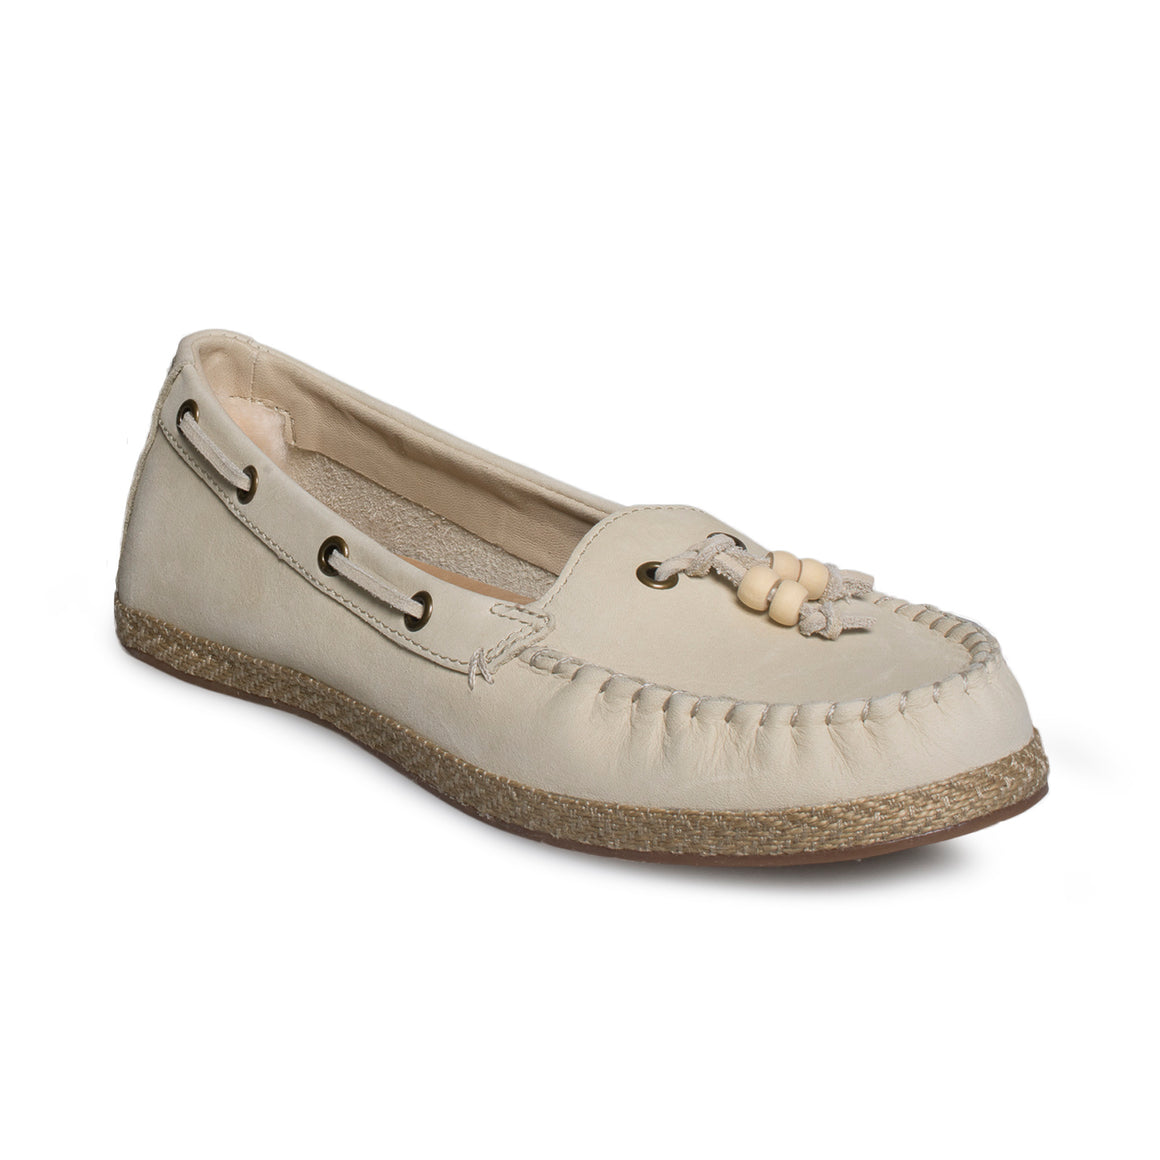 UGG Suzette Antique White Shoes - Women's